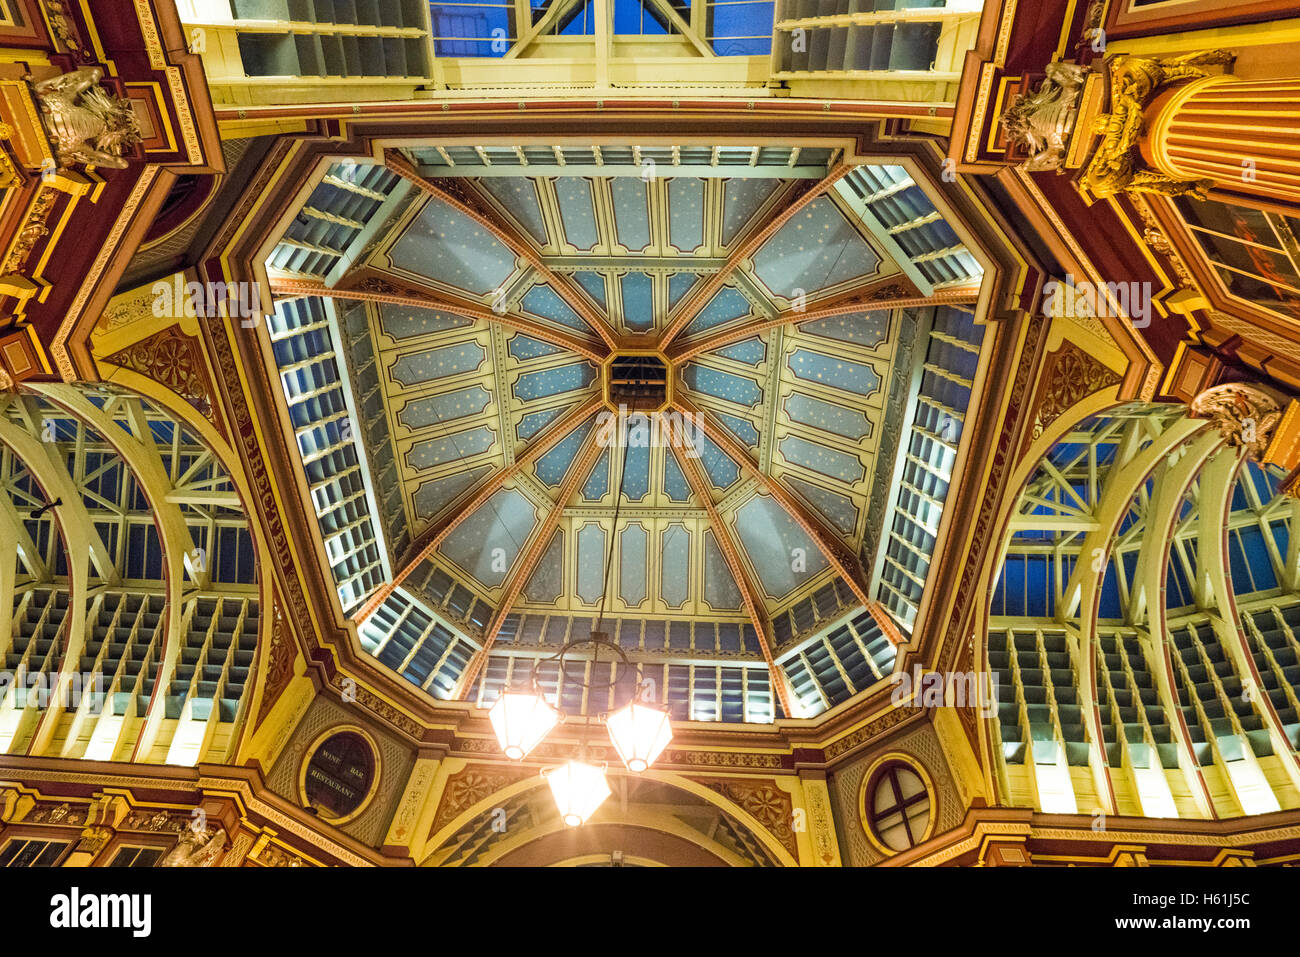 Beautiful ceiling of Leadenhall Market in London - Stock Image